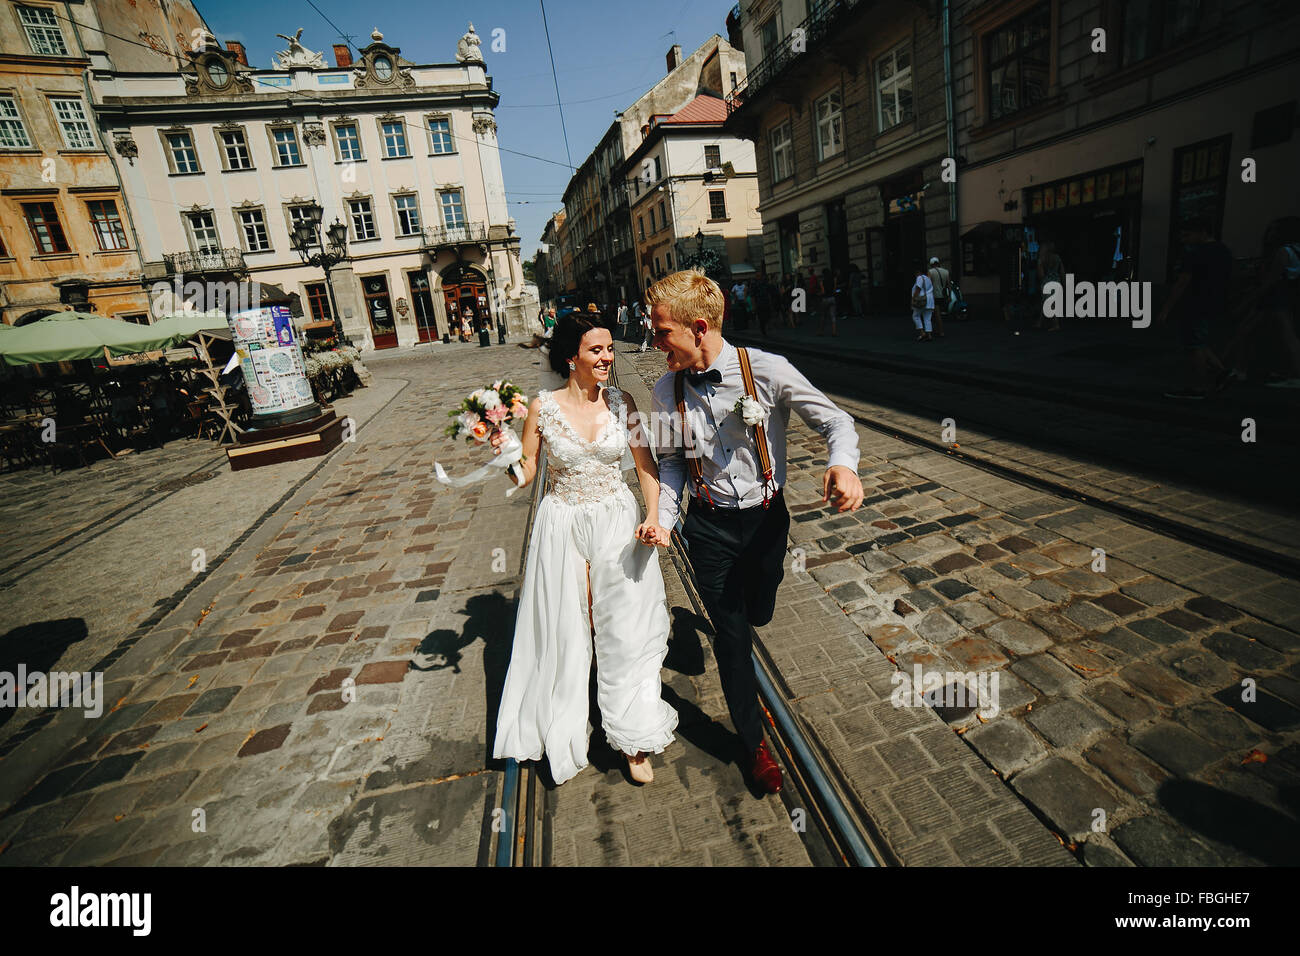 the bride and groom running along streets Stock Photo